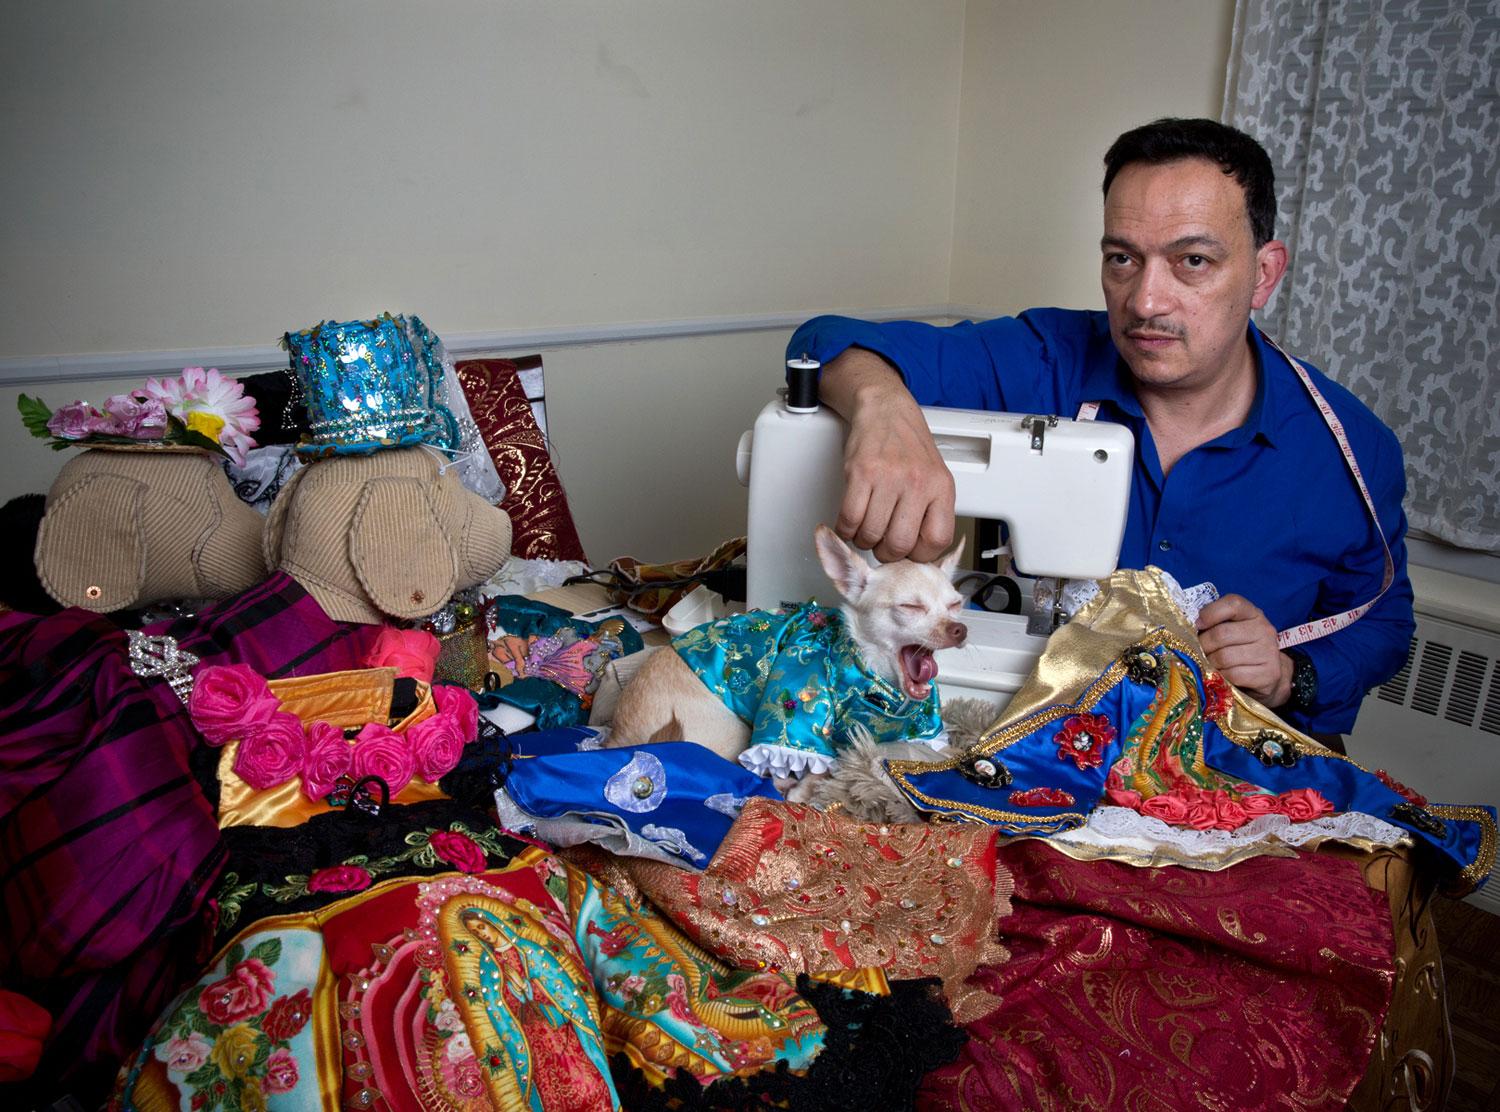 Anthony Rubio and his Chihuahua, Kimba, sewing couture for the upcoming Wigglebutt Wedding to benefit Cocker Spaniel Rescue.